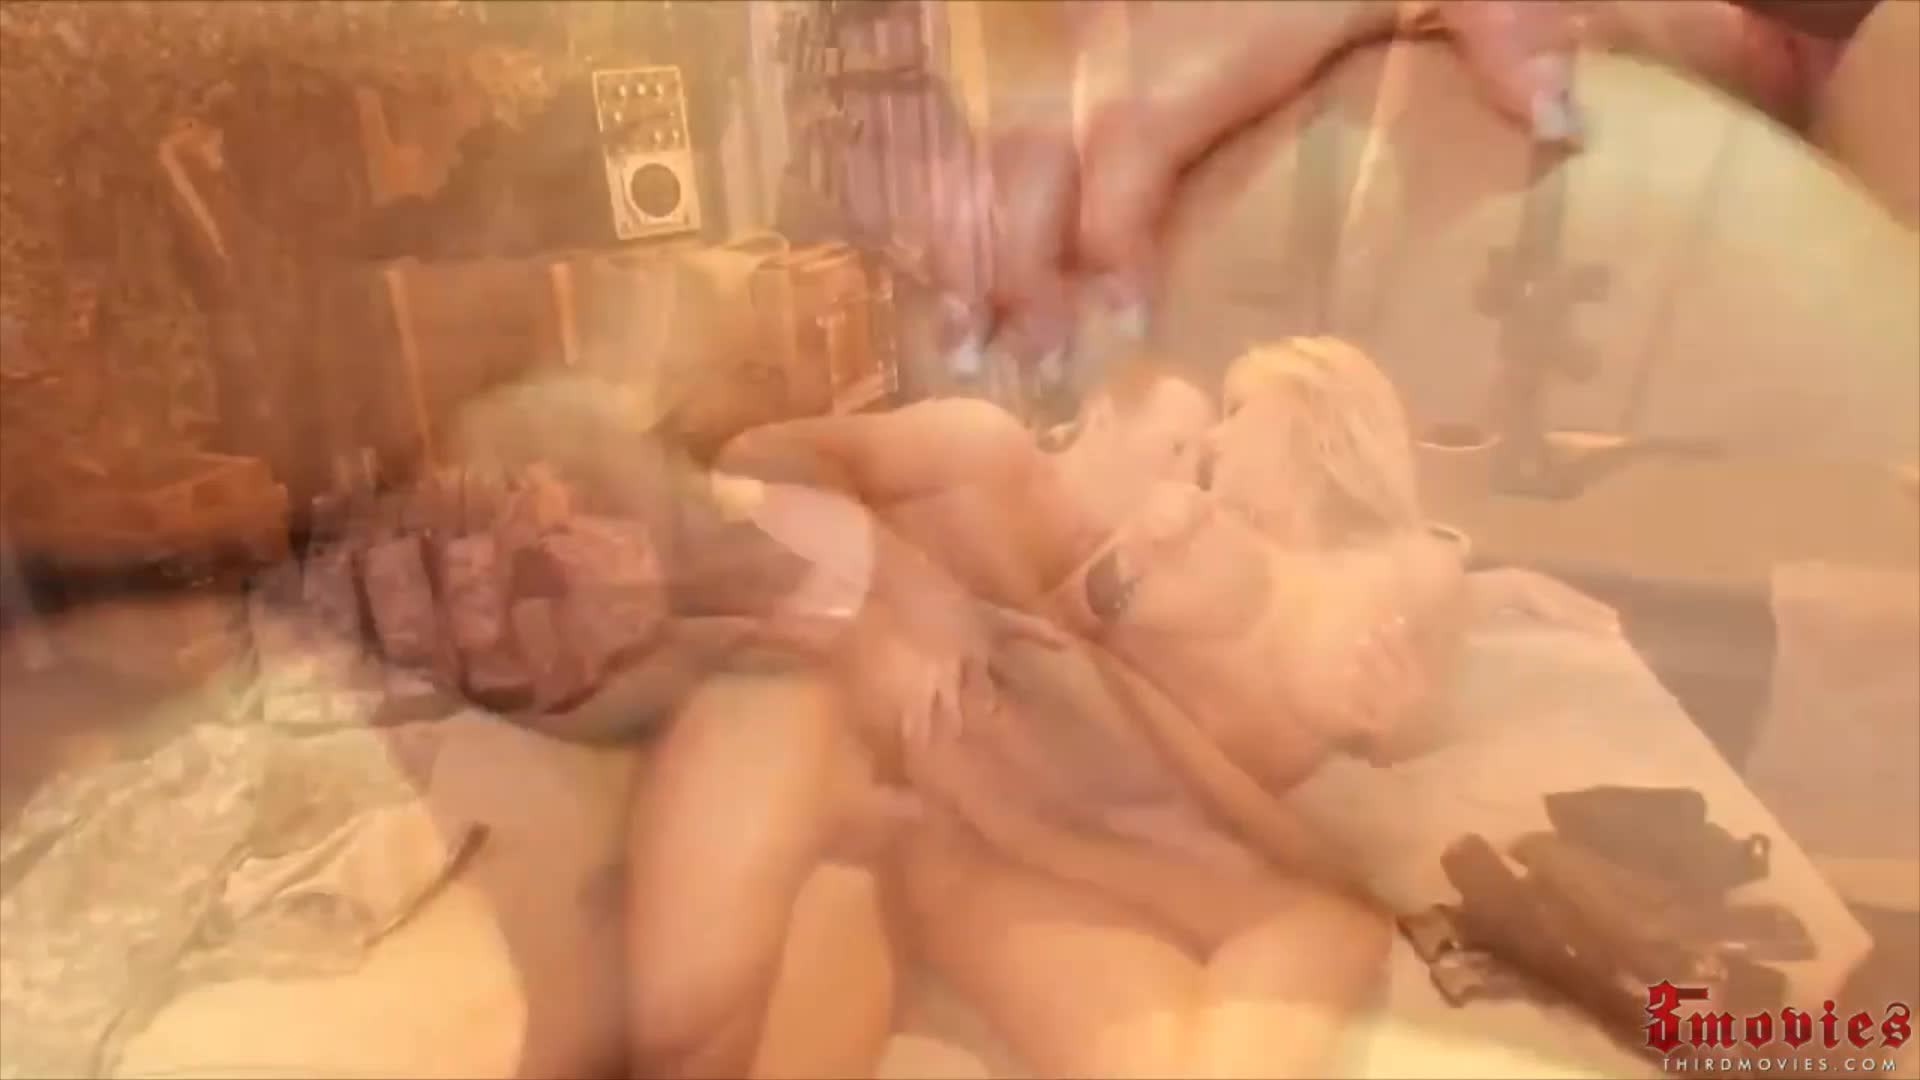 More shyla Stylez calling herself a whore/slut. Looking for more examples